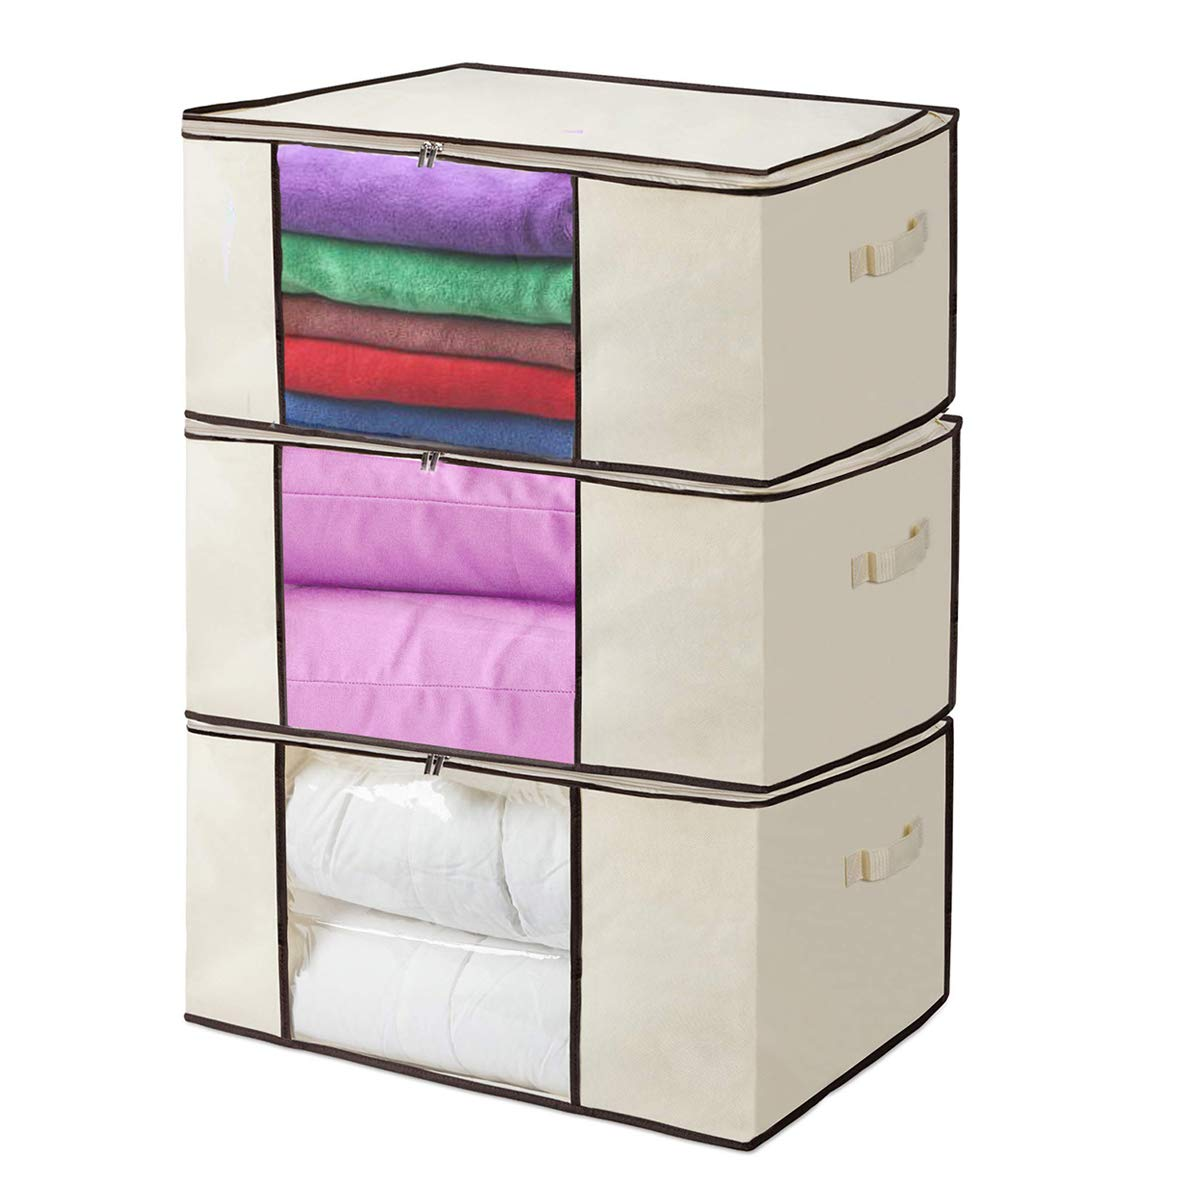 KEEGH Foldable Clothes Storage Bags Organizer Set of 3 Large Oxford Breathable Comforter Blanket Storage Containers with Zippers Perfect for Closet Seasonal Clothing Blanket Pillows by KEEGH